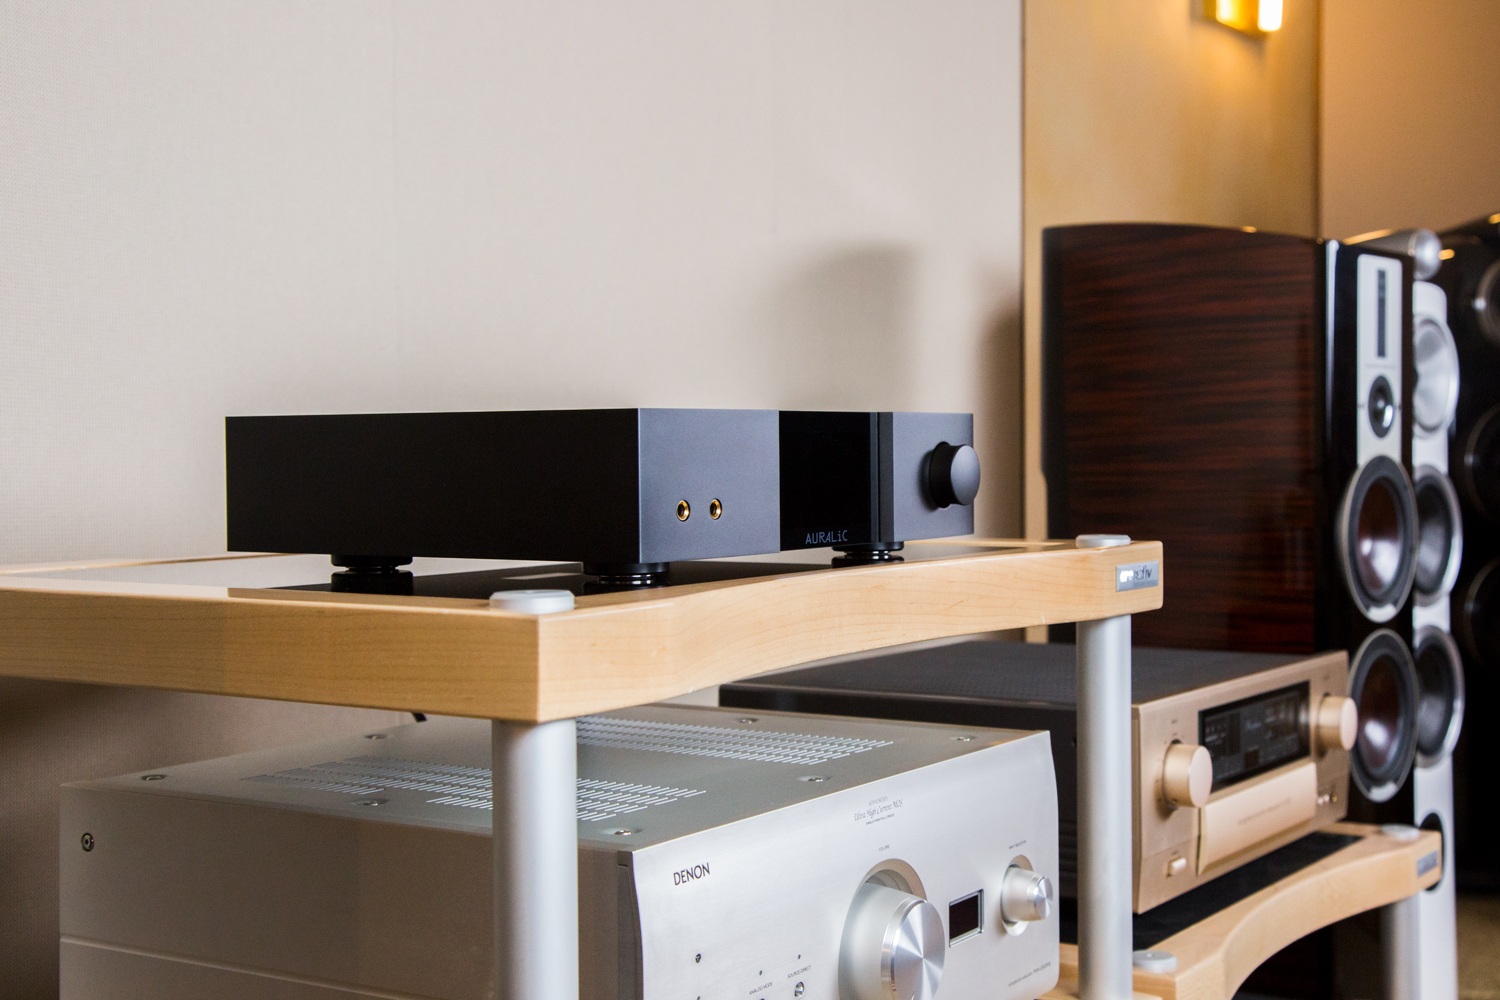 High End Streaming DAC im edlen Gewand: Der Auralic Vega G2